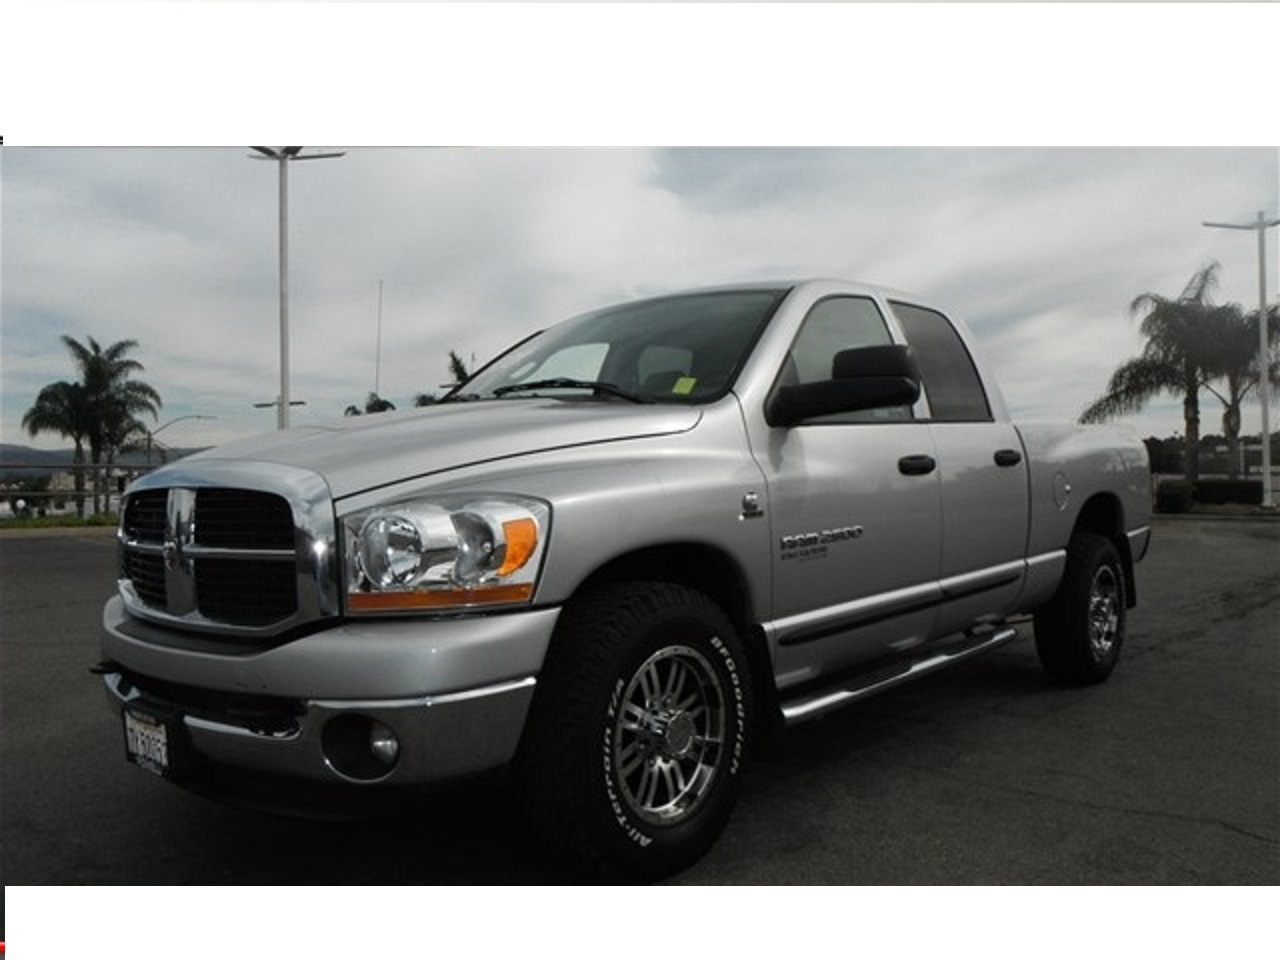 Click image for larger version  Name:My Truck.jpg Views:235 Size:171.6 KB ID:18052